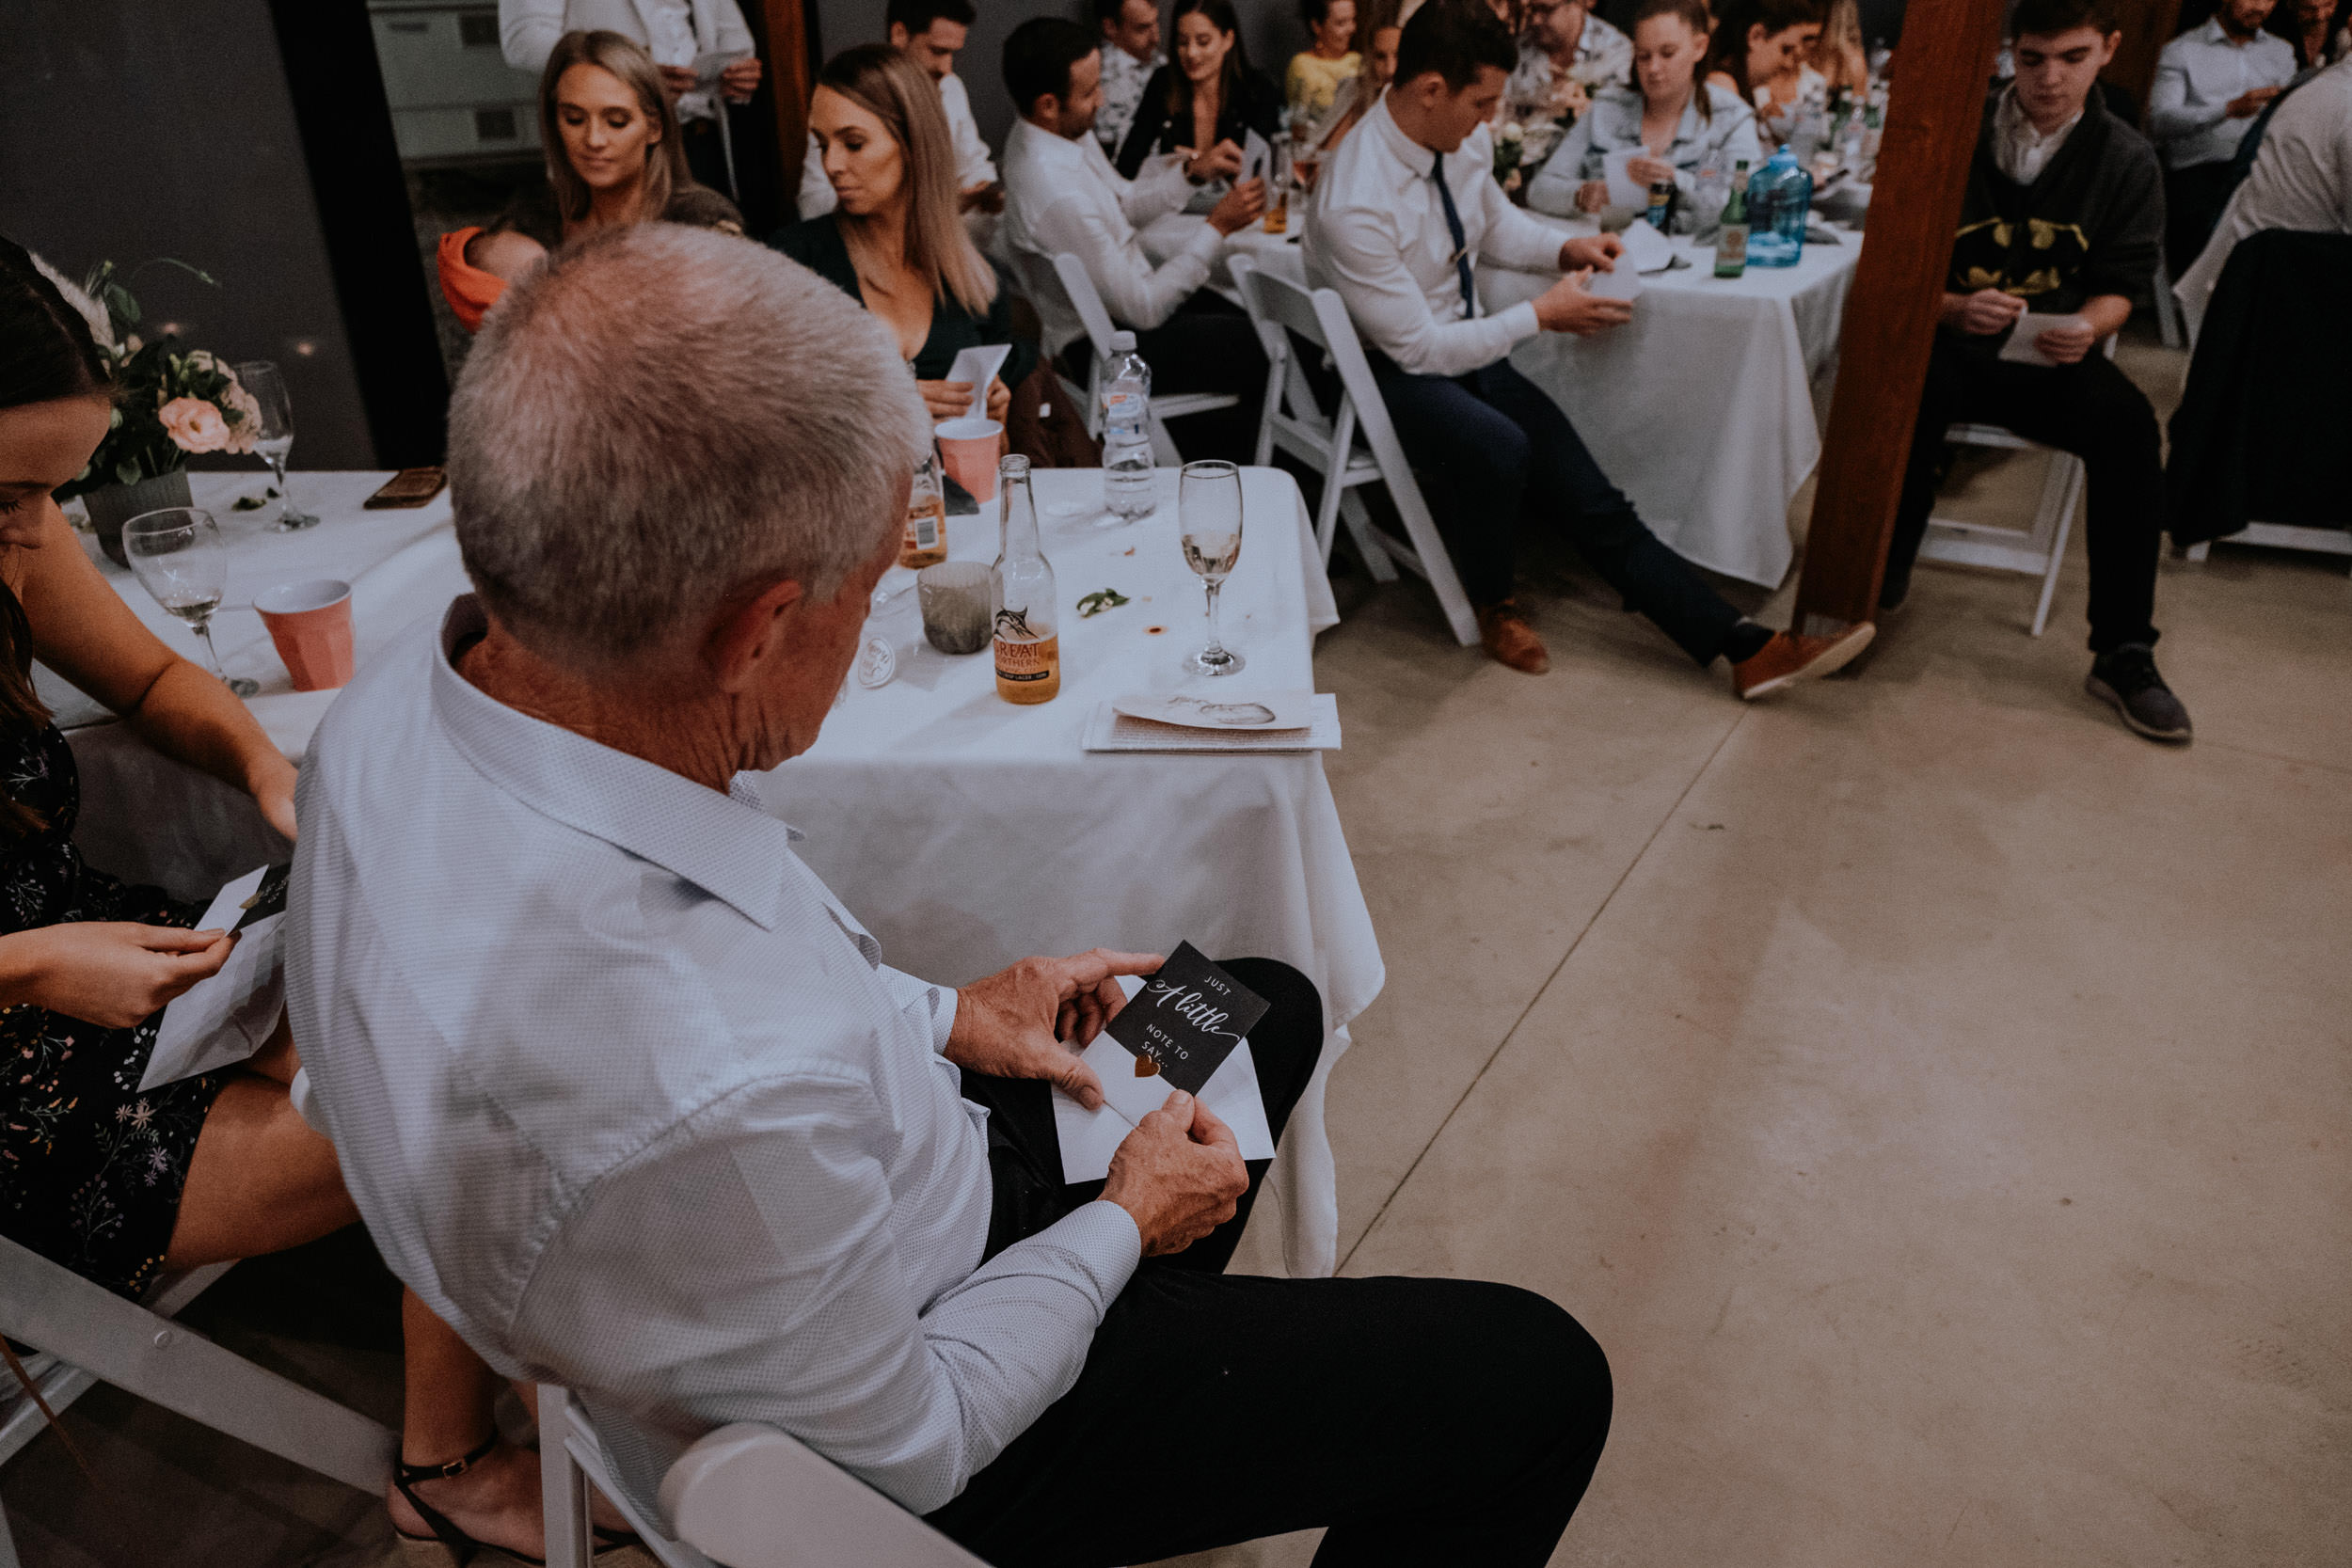 Bride and groom's speeches and surprise pregnancy announcement during wedding reception at Seclusions, captured by Kings & Thieves Blue Mountains Wedding Photography